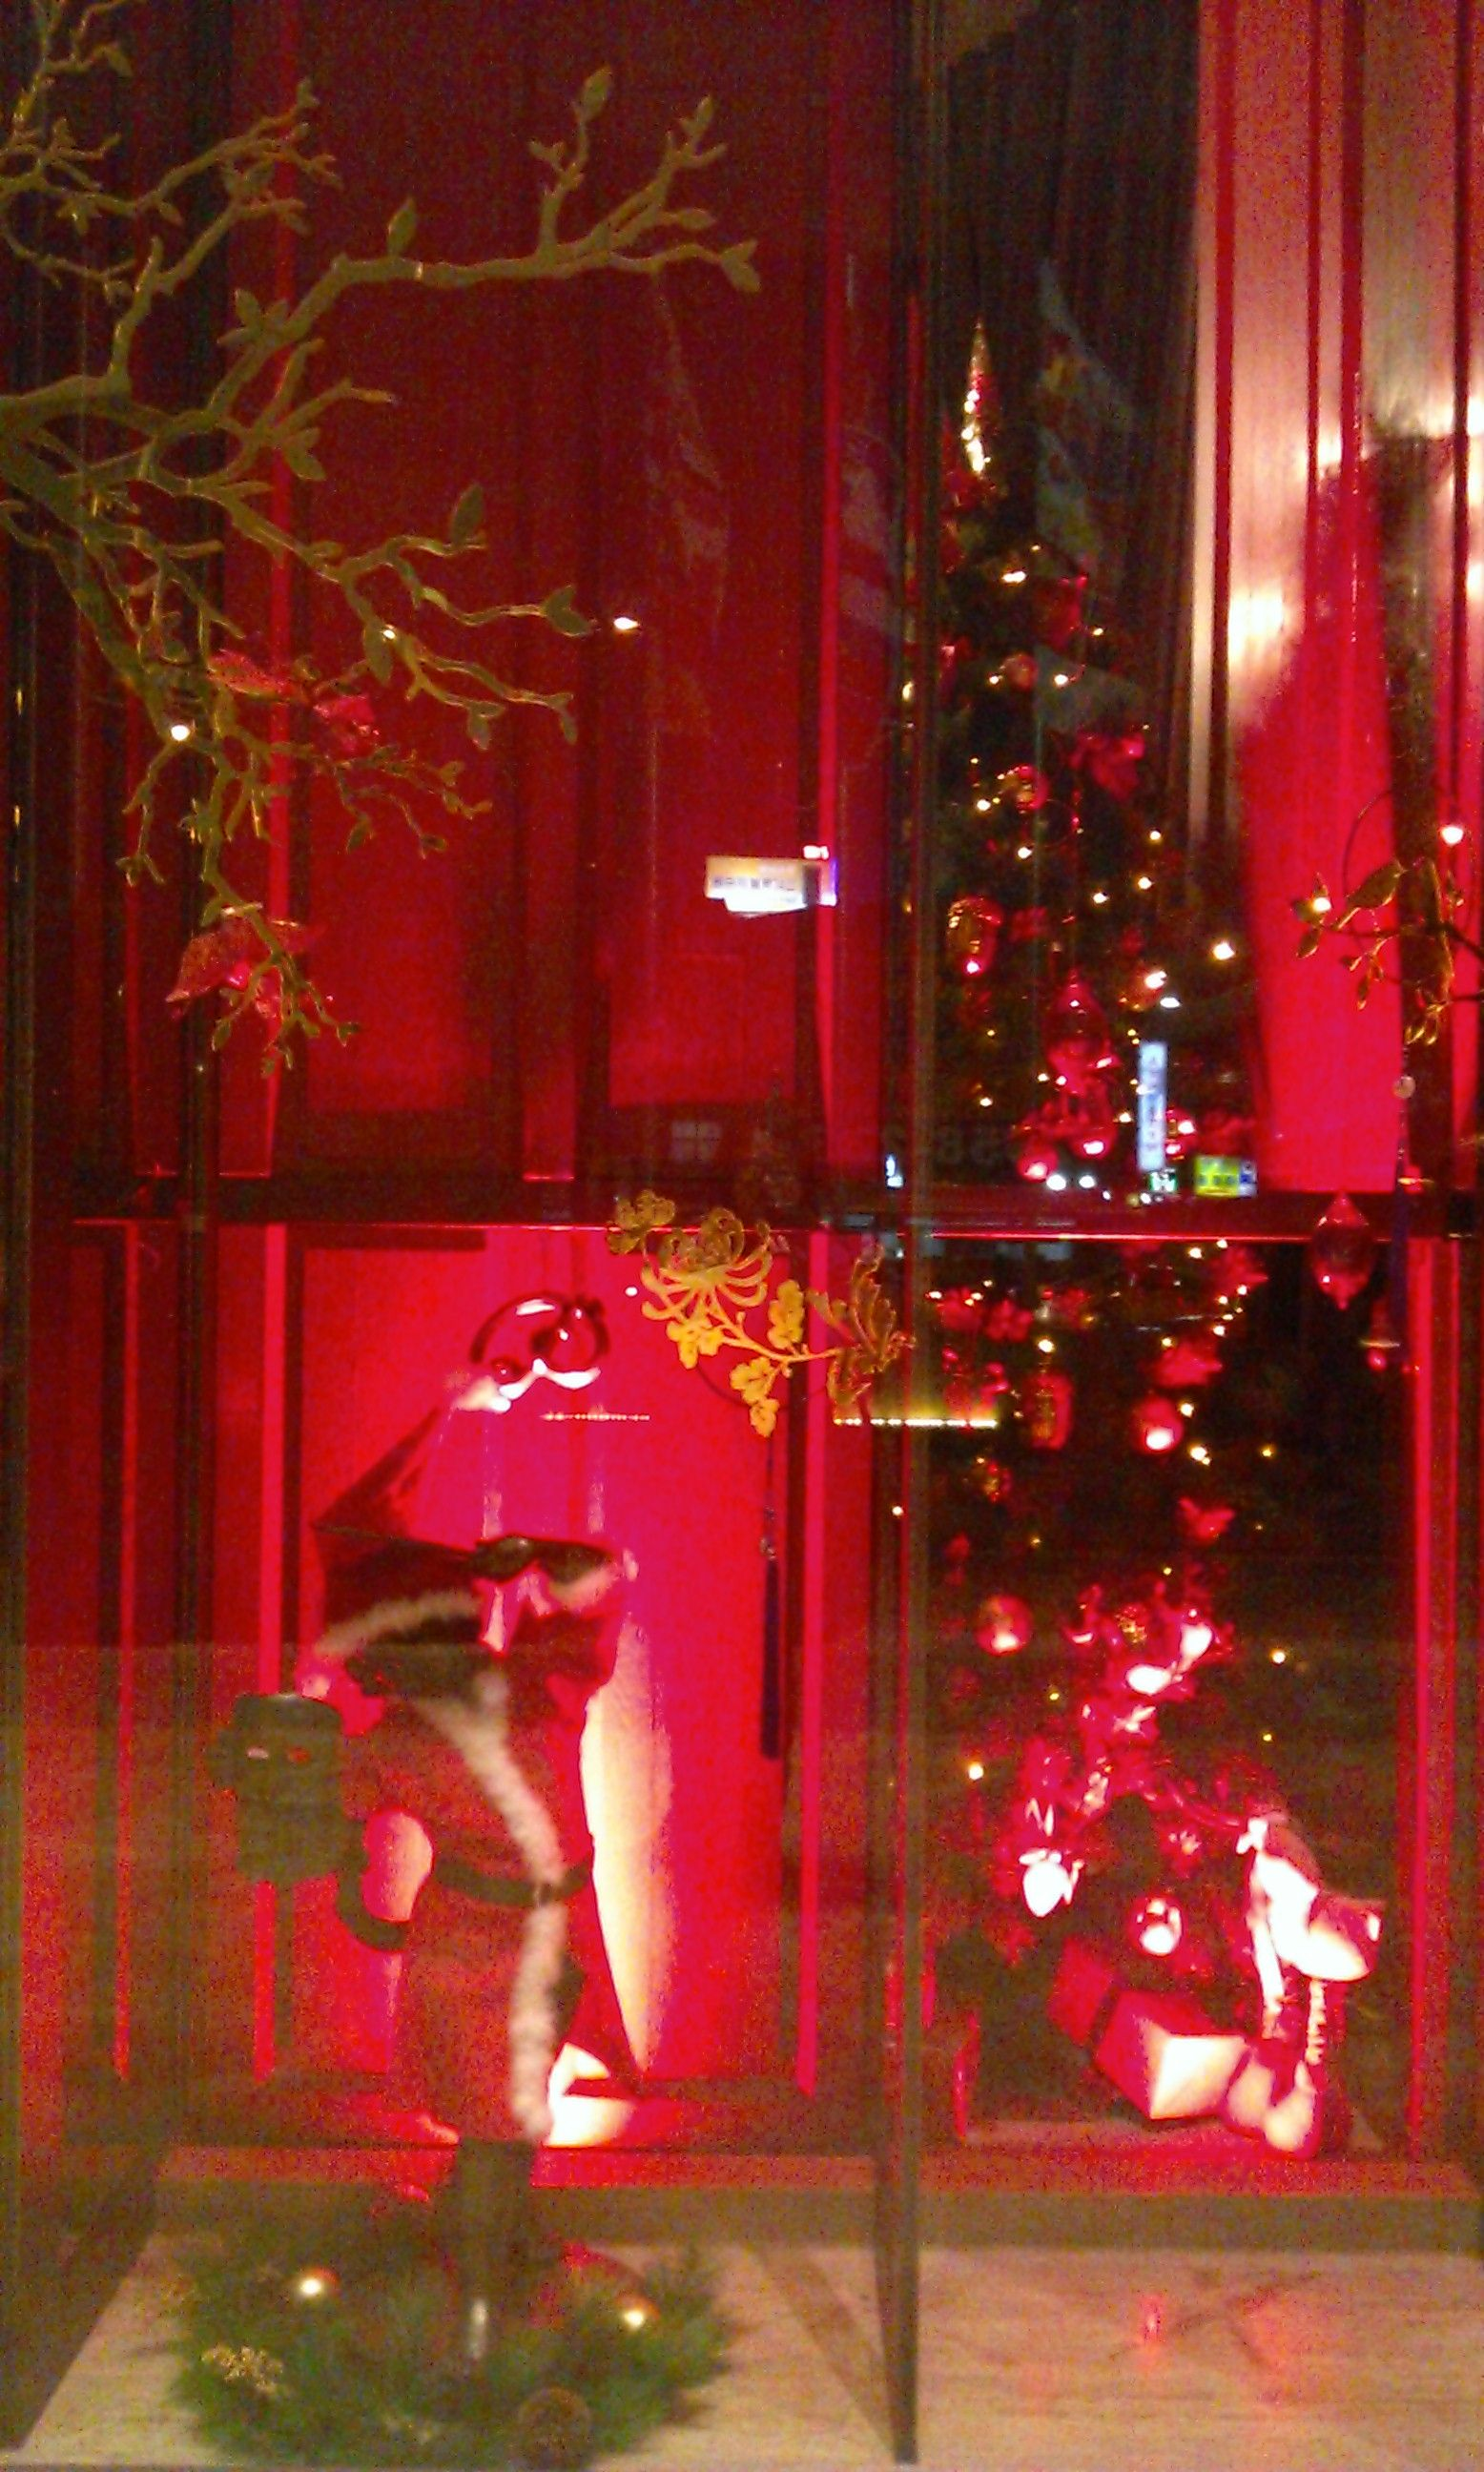 君品酒店 Palais de Chine Hotel Holiday decor, Christmas tree